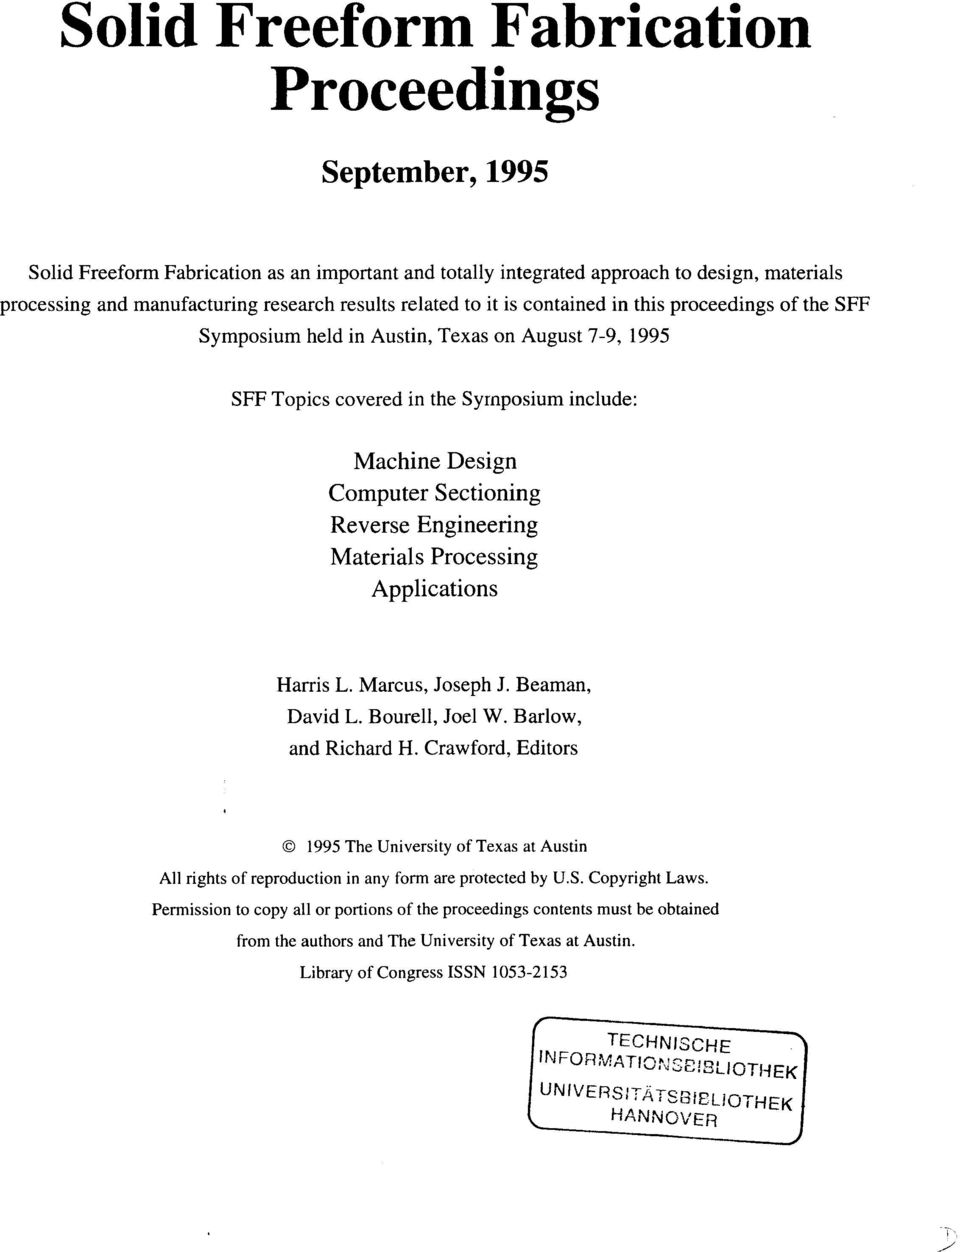 Engineering Materials Processing Applications Harris L. Marcus, Joseph J. Beaman, David L. Bourell, Joel W. Barlow, and Richard H.